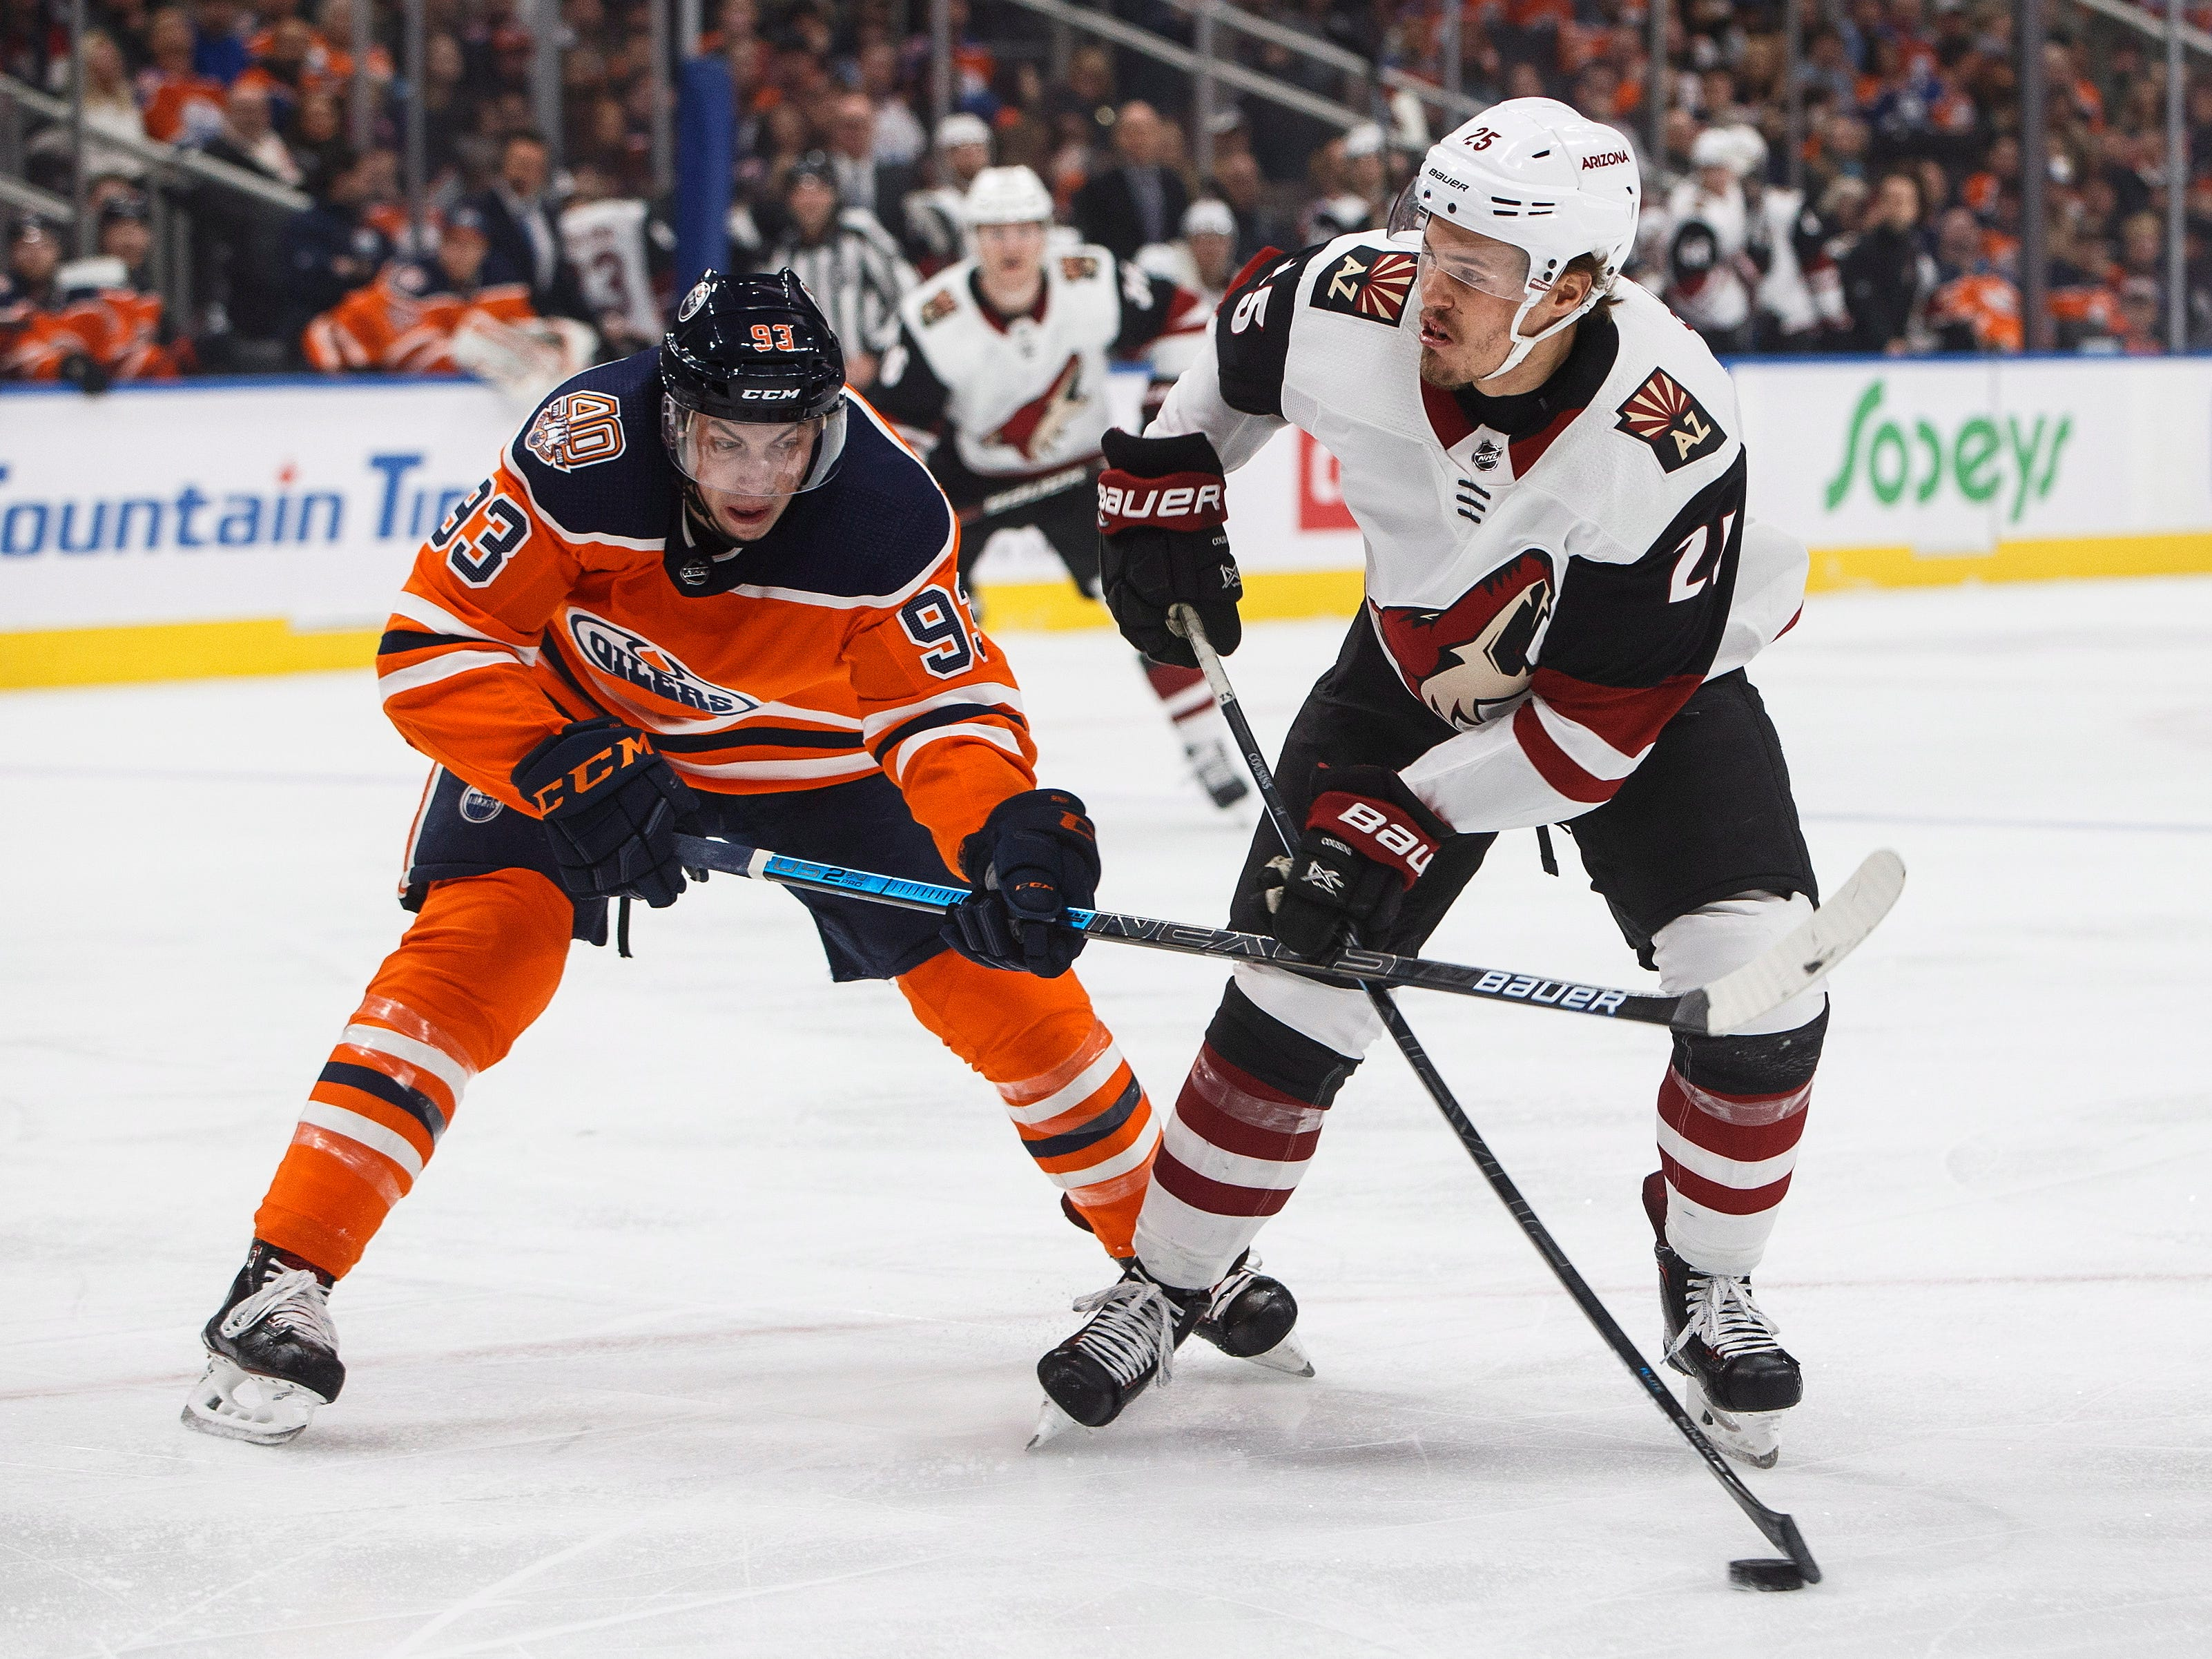 Arizona Coyotes ' Nick Cousins (25) is chased by Edmonton Oilers' Ryan Nugent-Hopkins (93) during the first period, Saturday, Jan. 12, 2019, in Edmonton Alberta. (Jason Franson/The Canadian Press via AP)